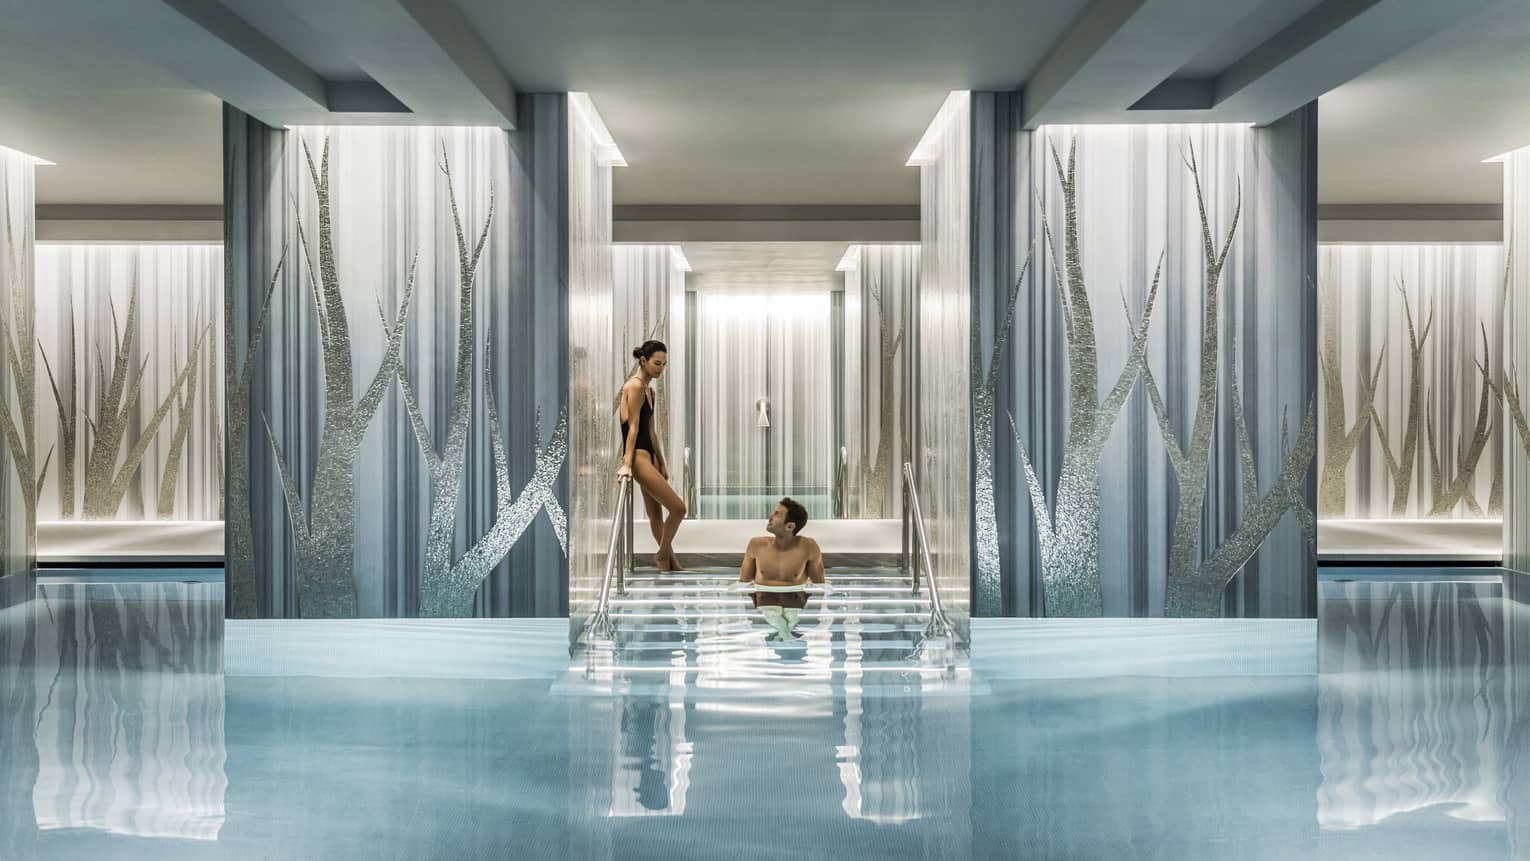 Woman in black swimsuit enters serenity pool while man sits on steps between blue and silver columns